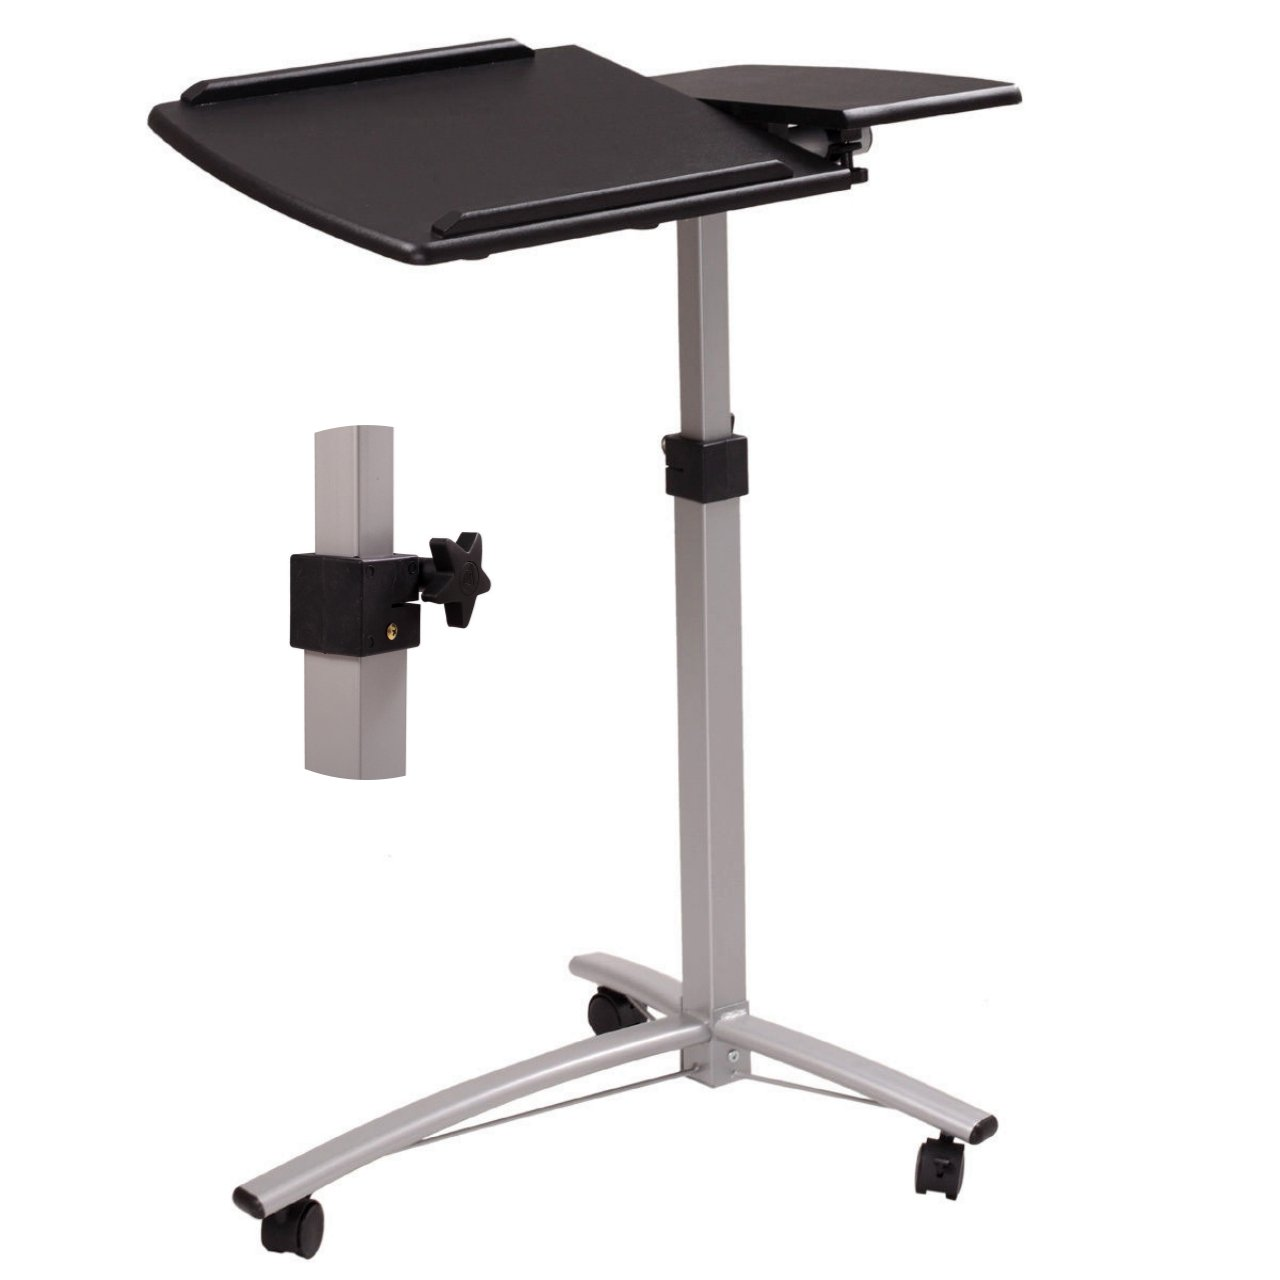 Laptop Notebook Smartphone Stand Portable Rolling Desk Bedroom Cart 360 ° Tabletop Angle - School Home Office Furniture Black #1043